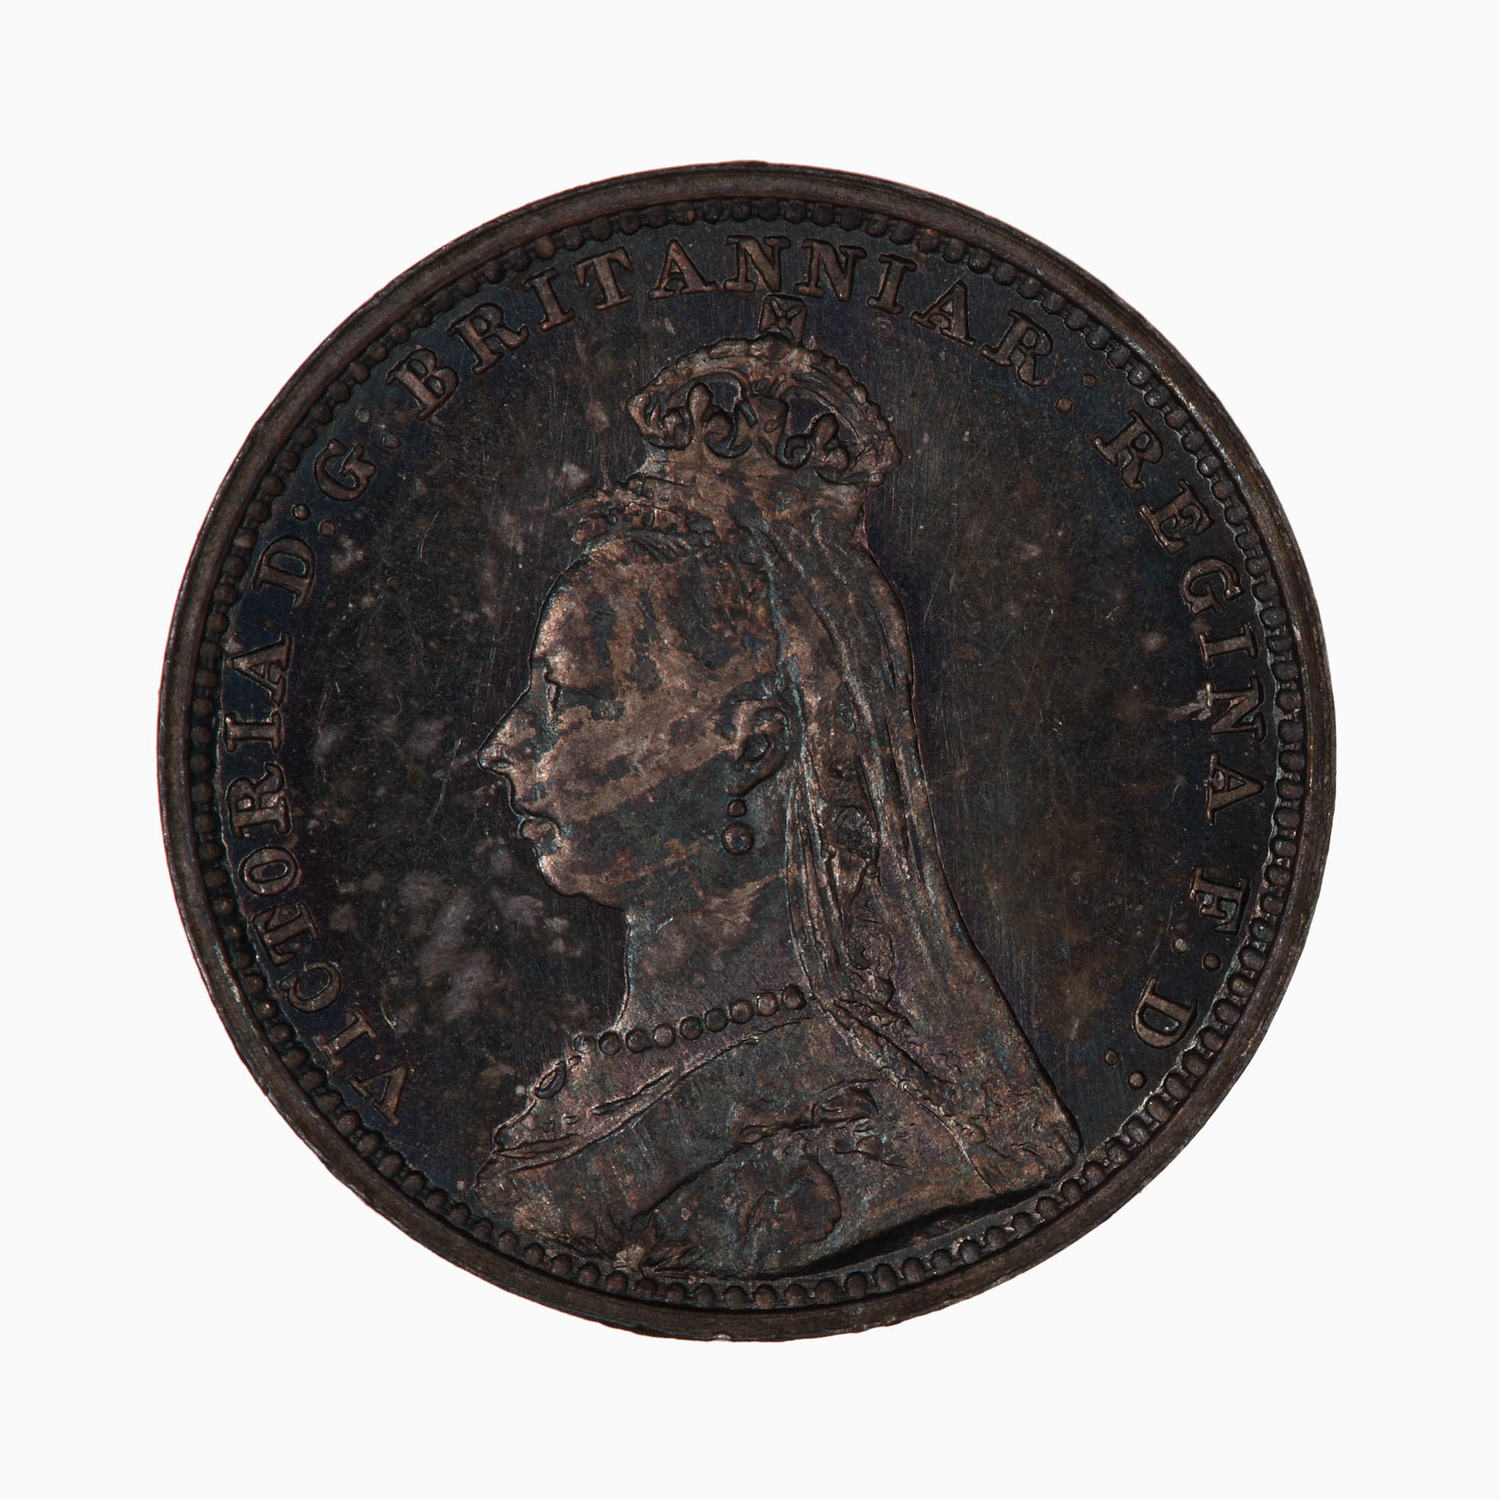 Maundy Twopence (Pre-decimal): Photo Coin - Twopence (Maundy), Queen Victoria, Great Britain, 1892